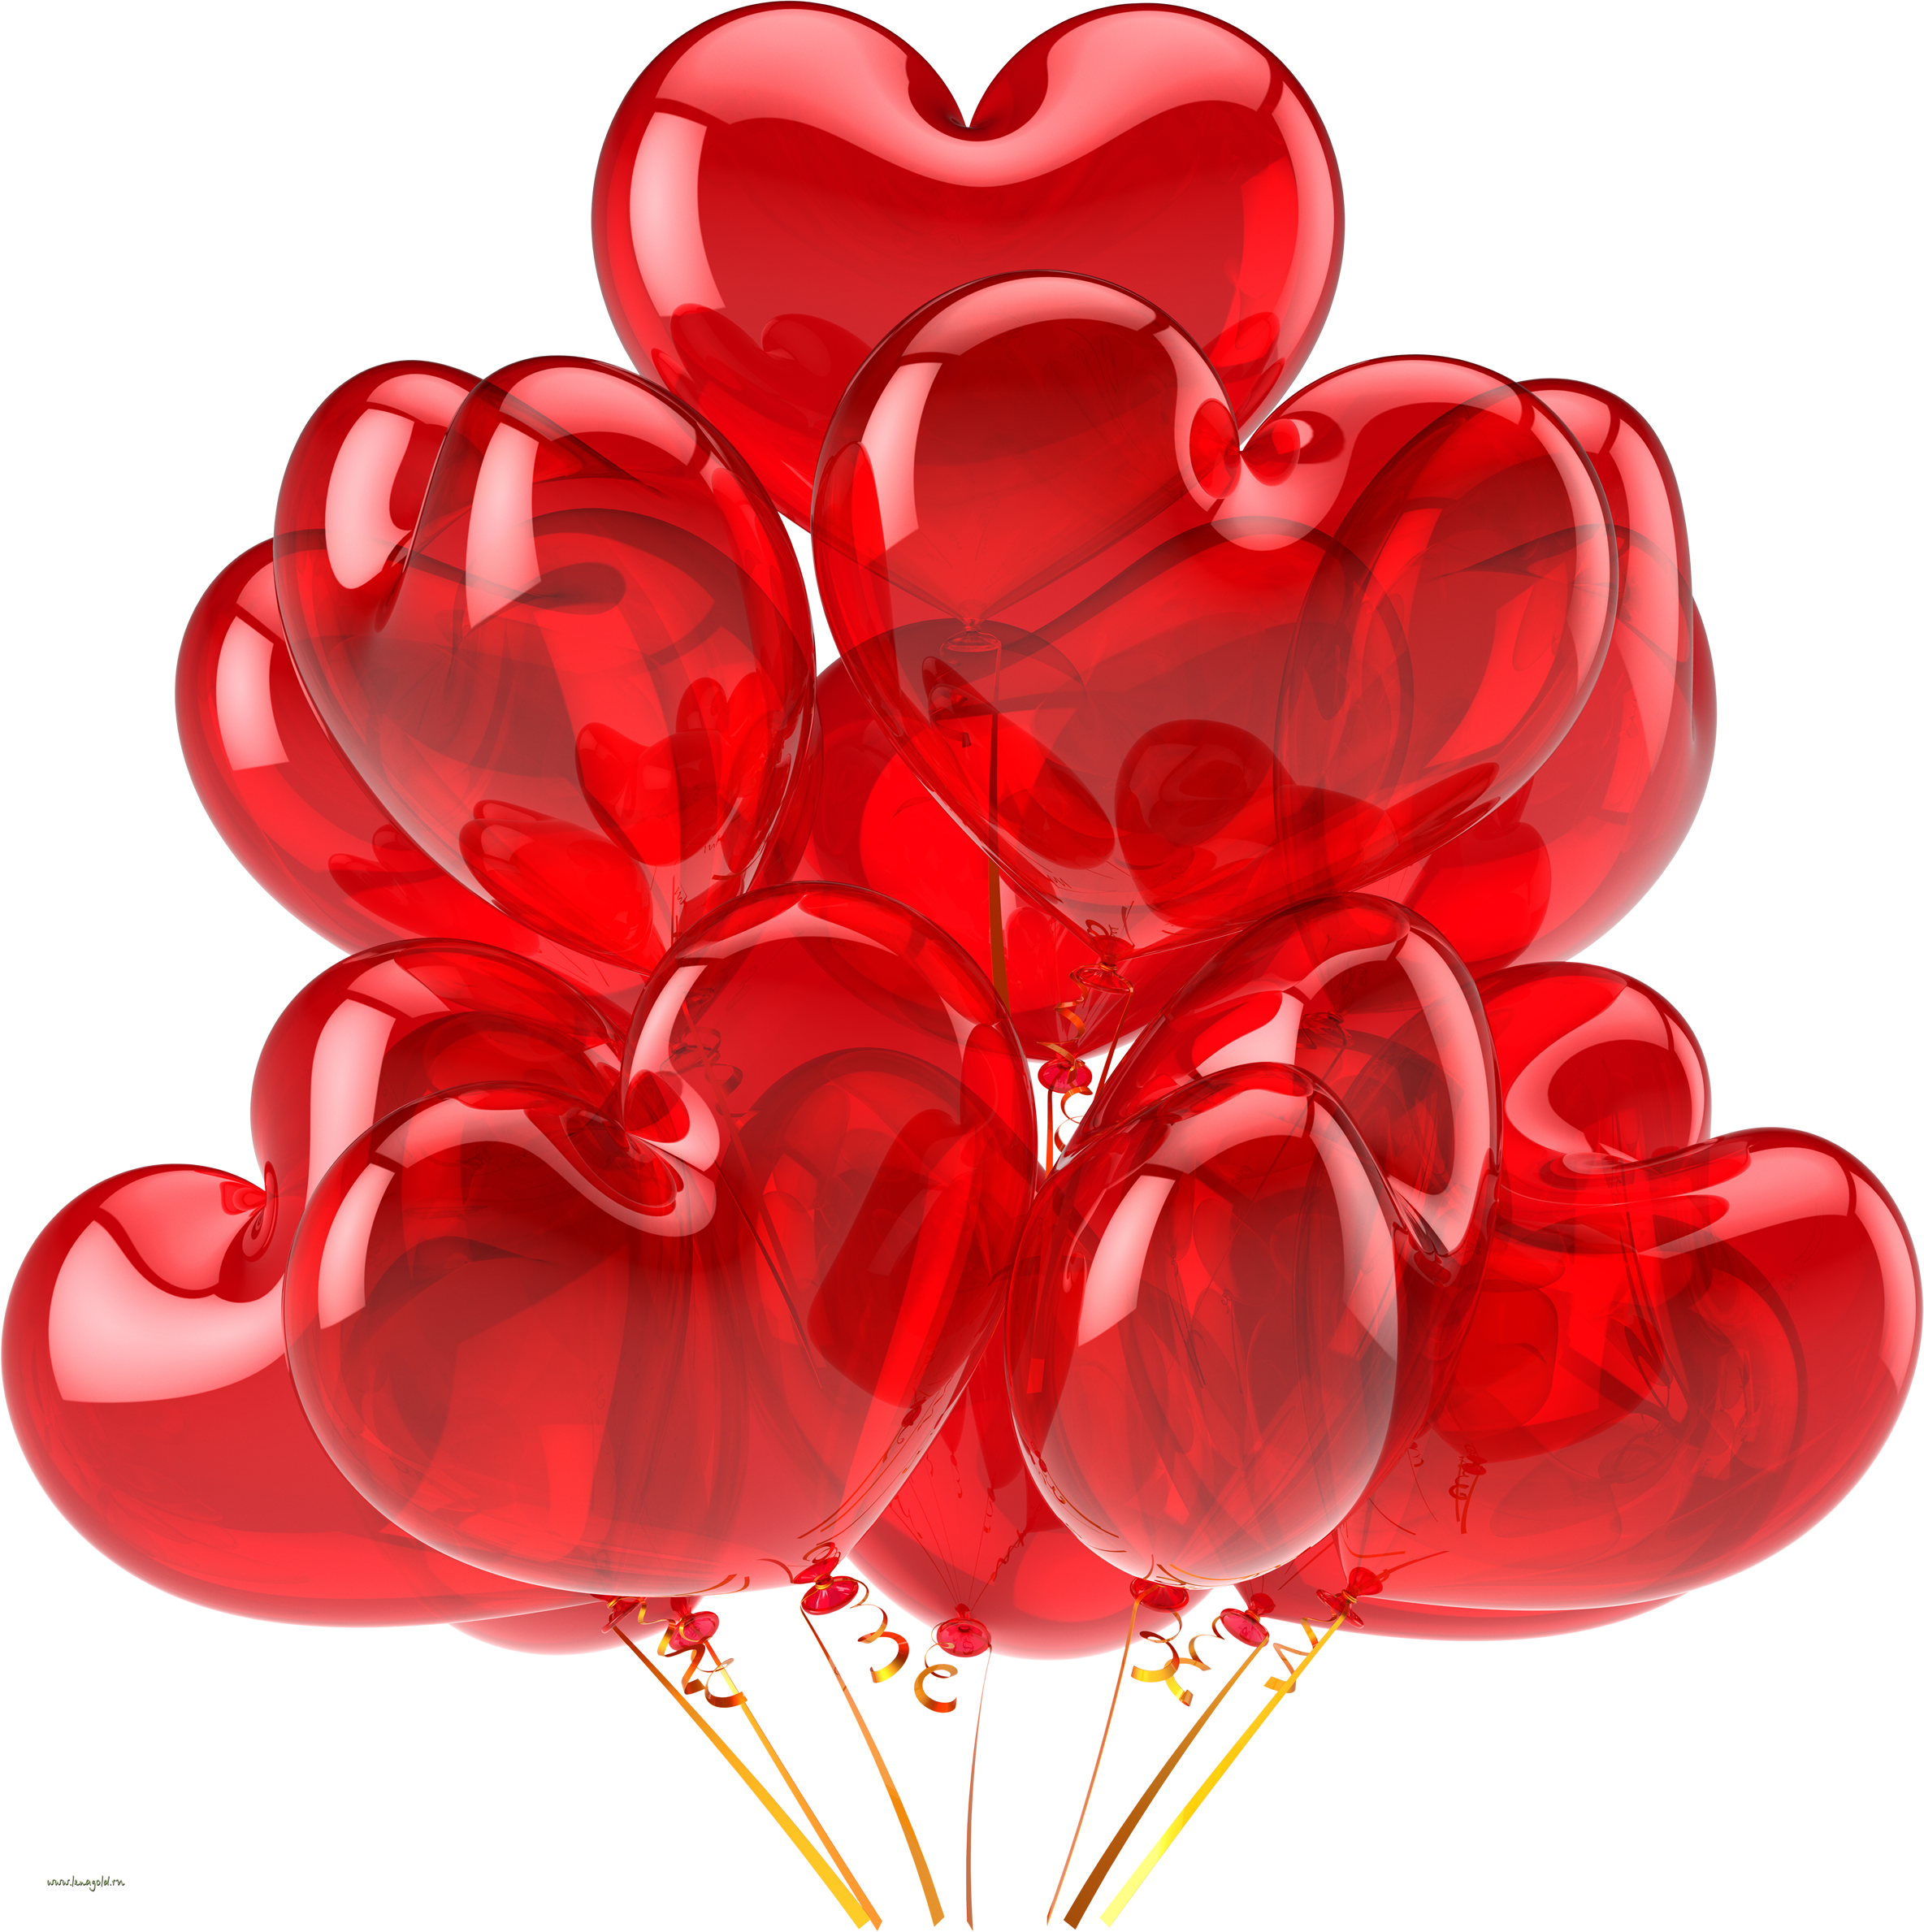 Download Png Image Red Balloon Png Image Free Download Red Balloon Balloons Photography Balloons